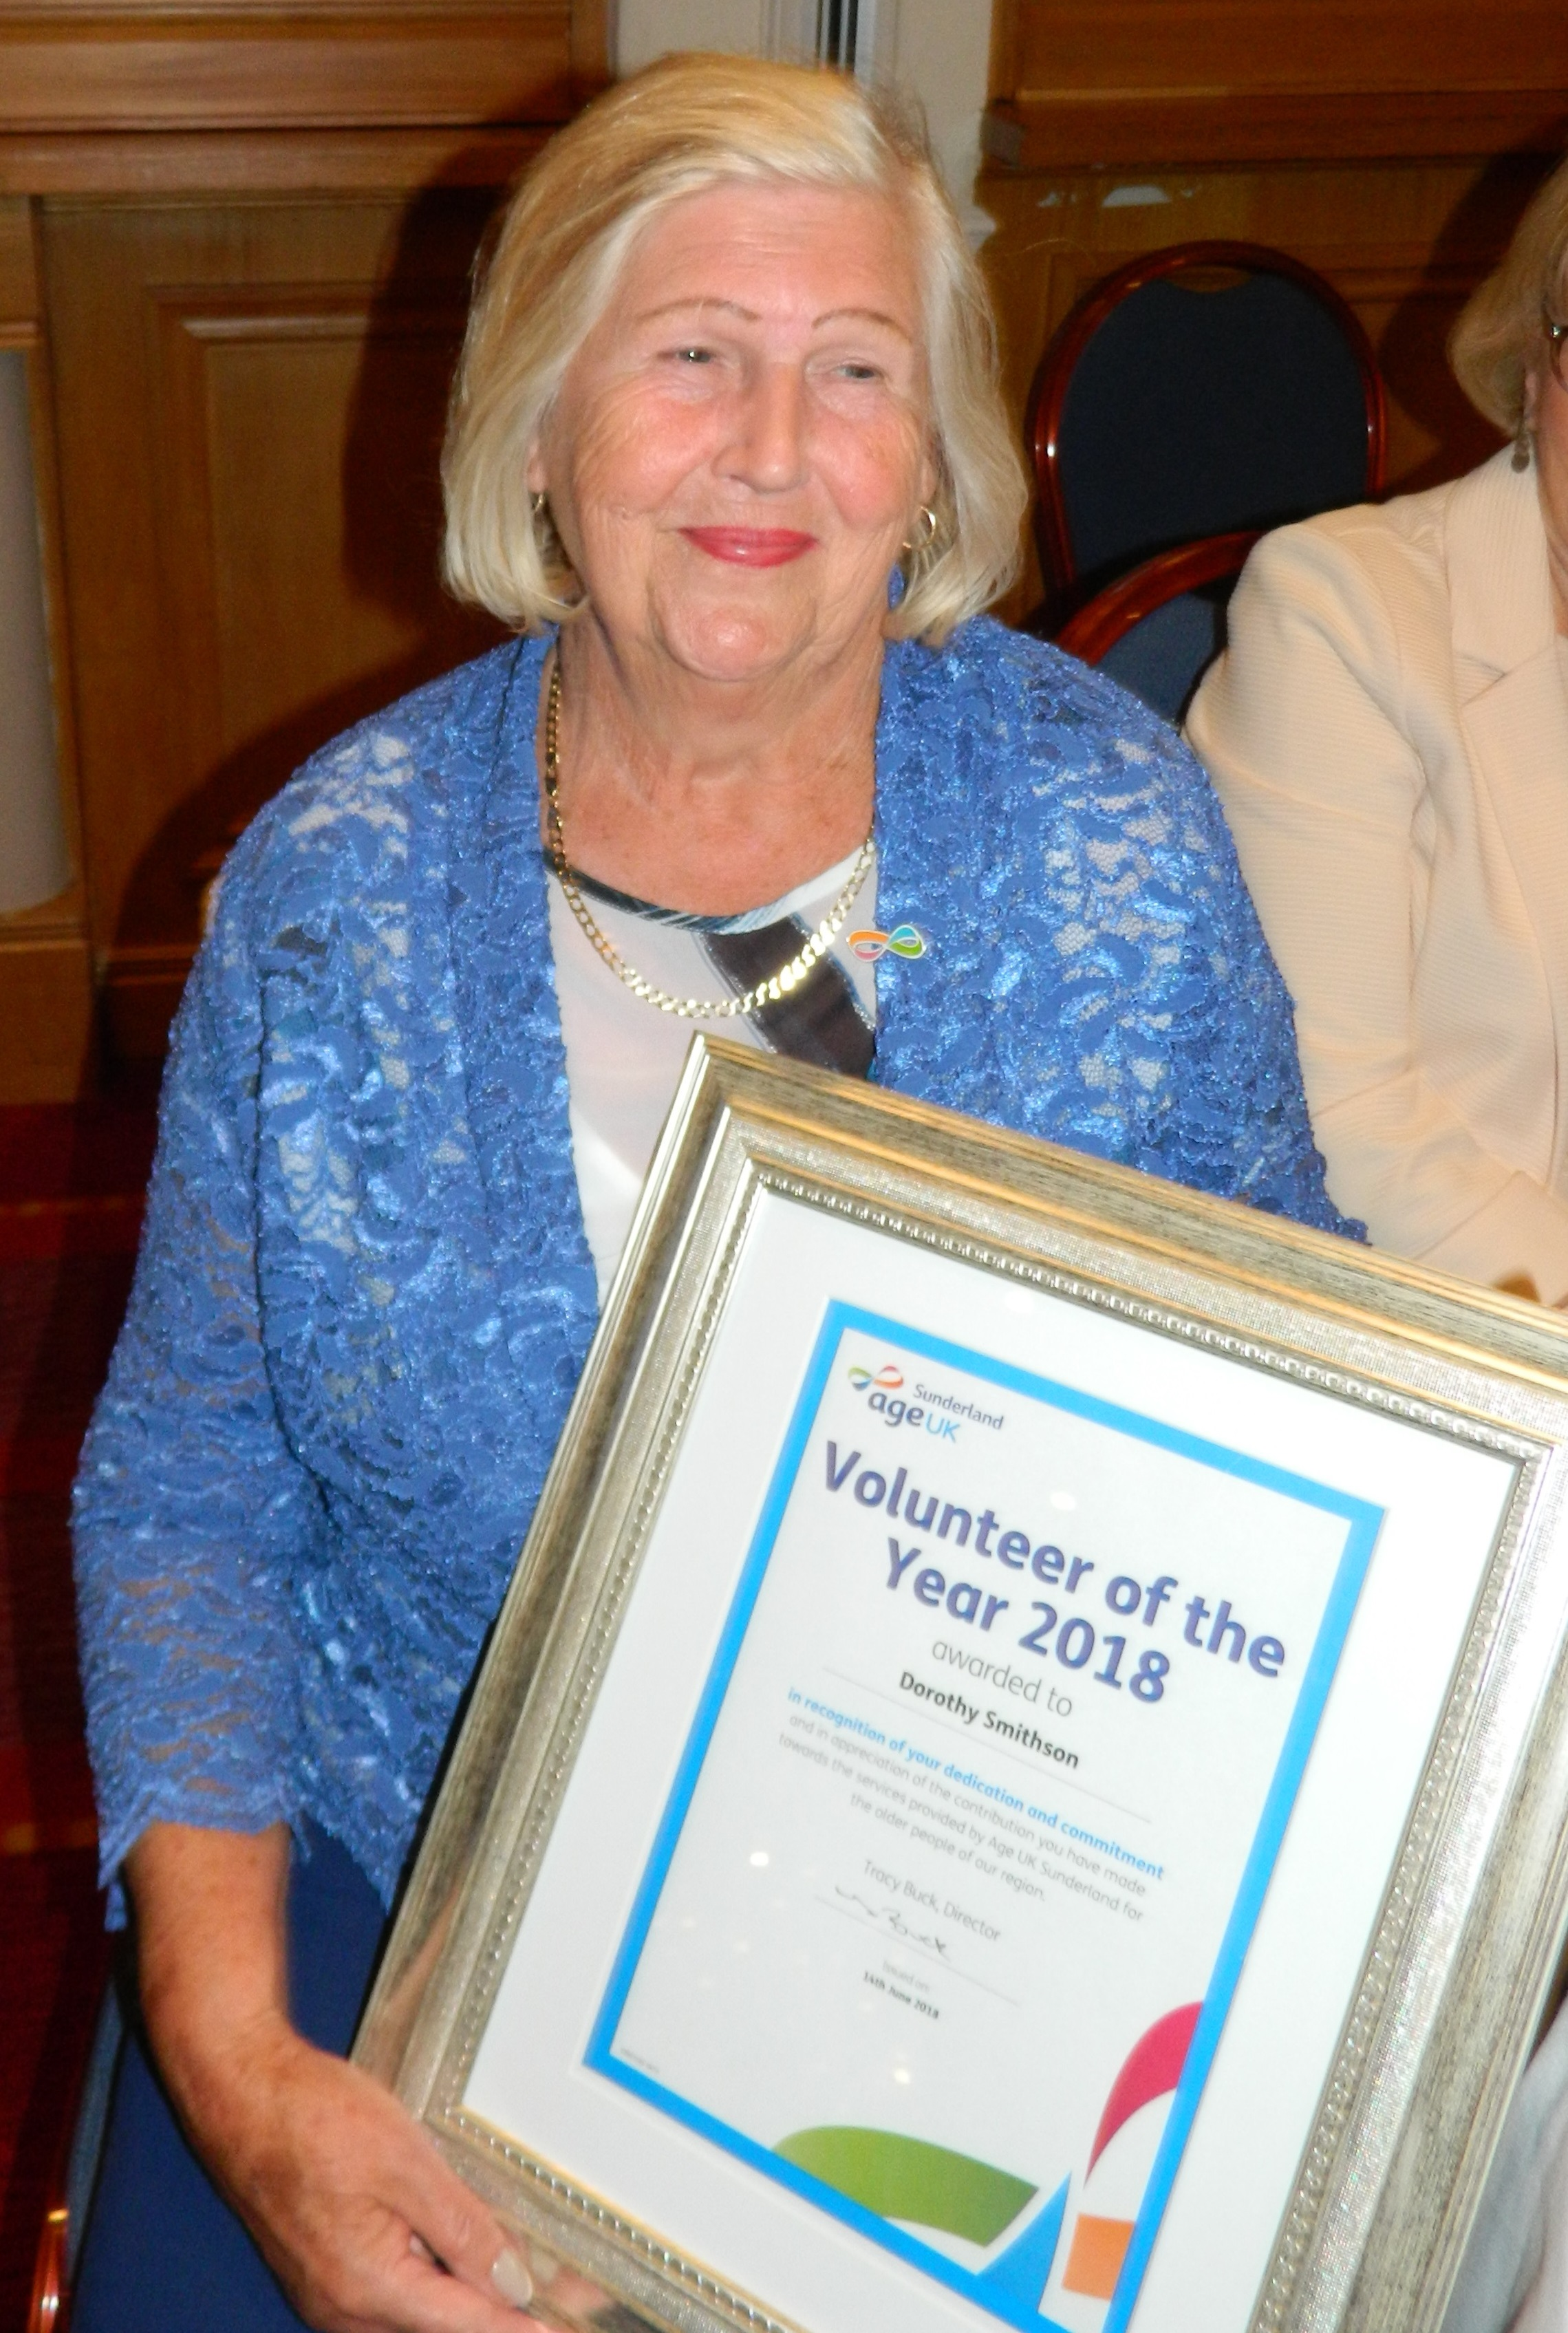 Volunteer of the Year 2018